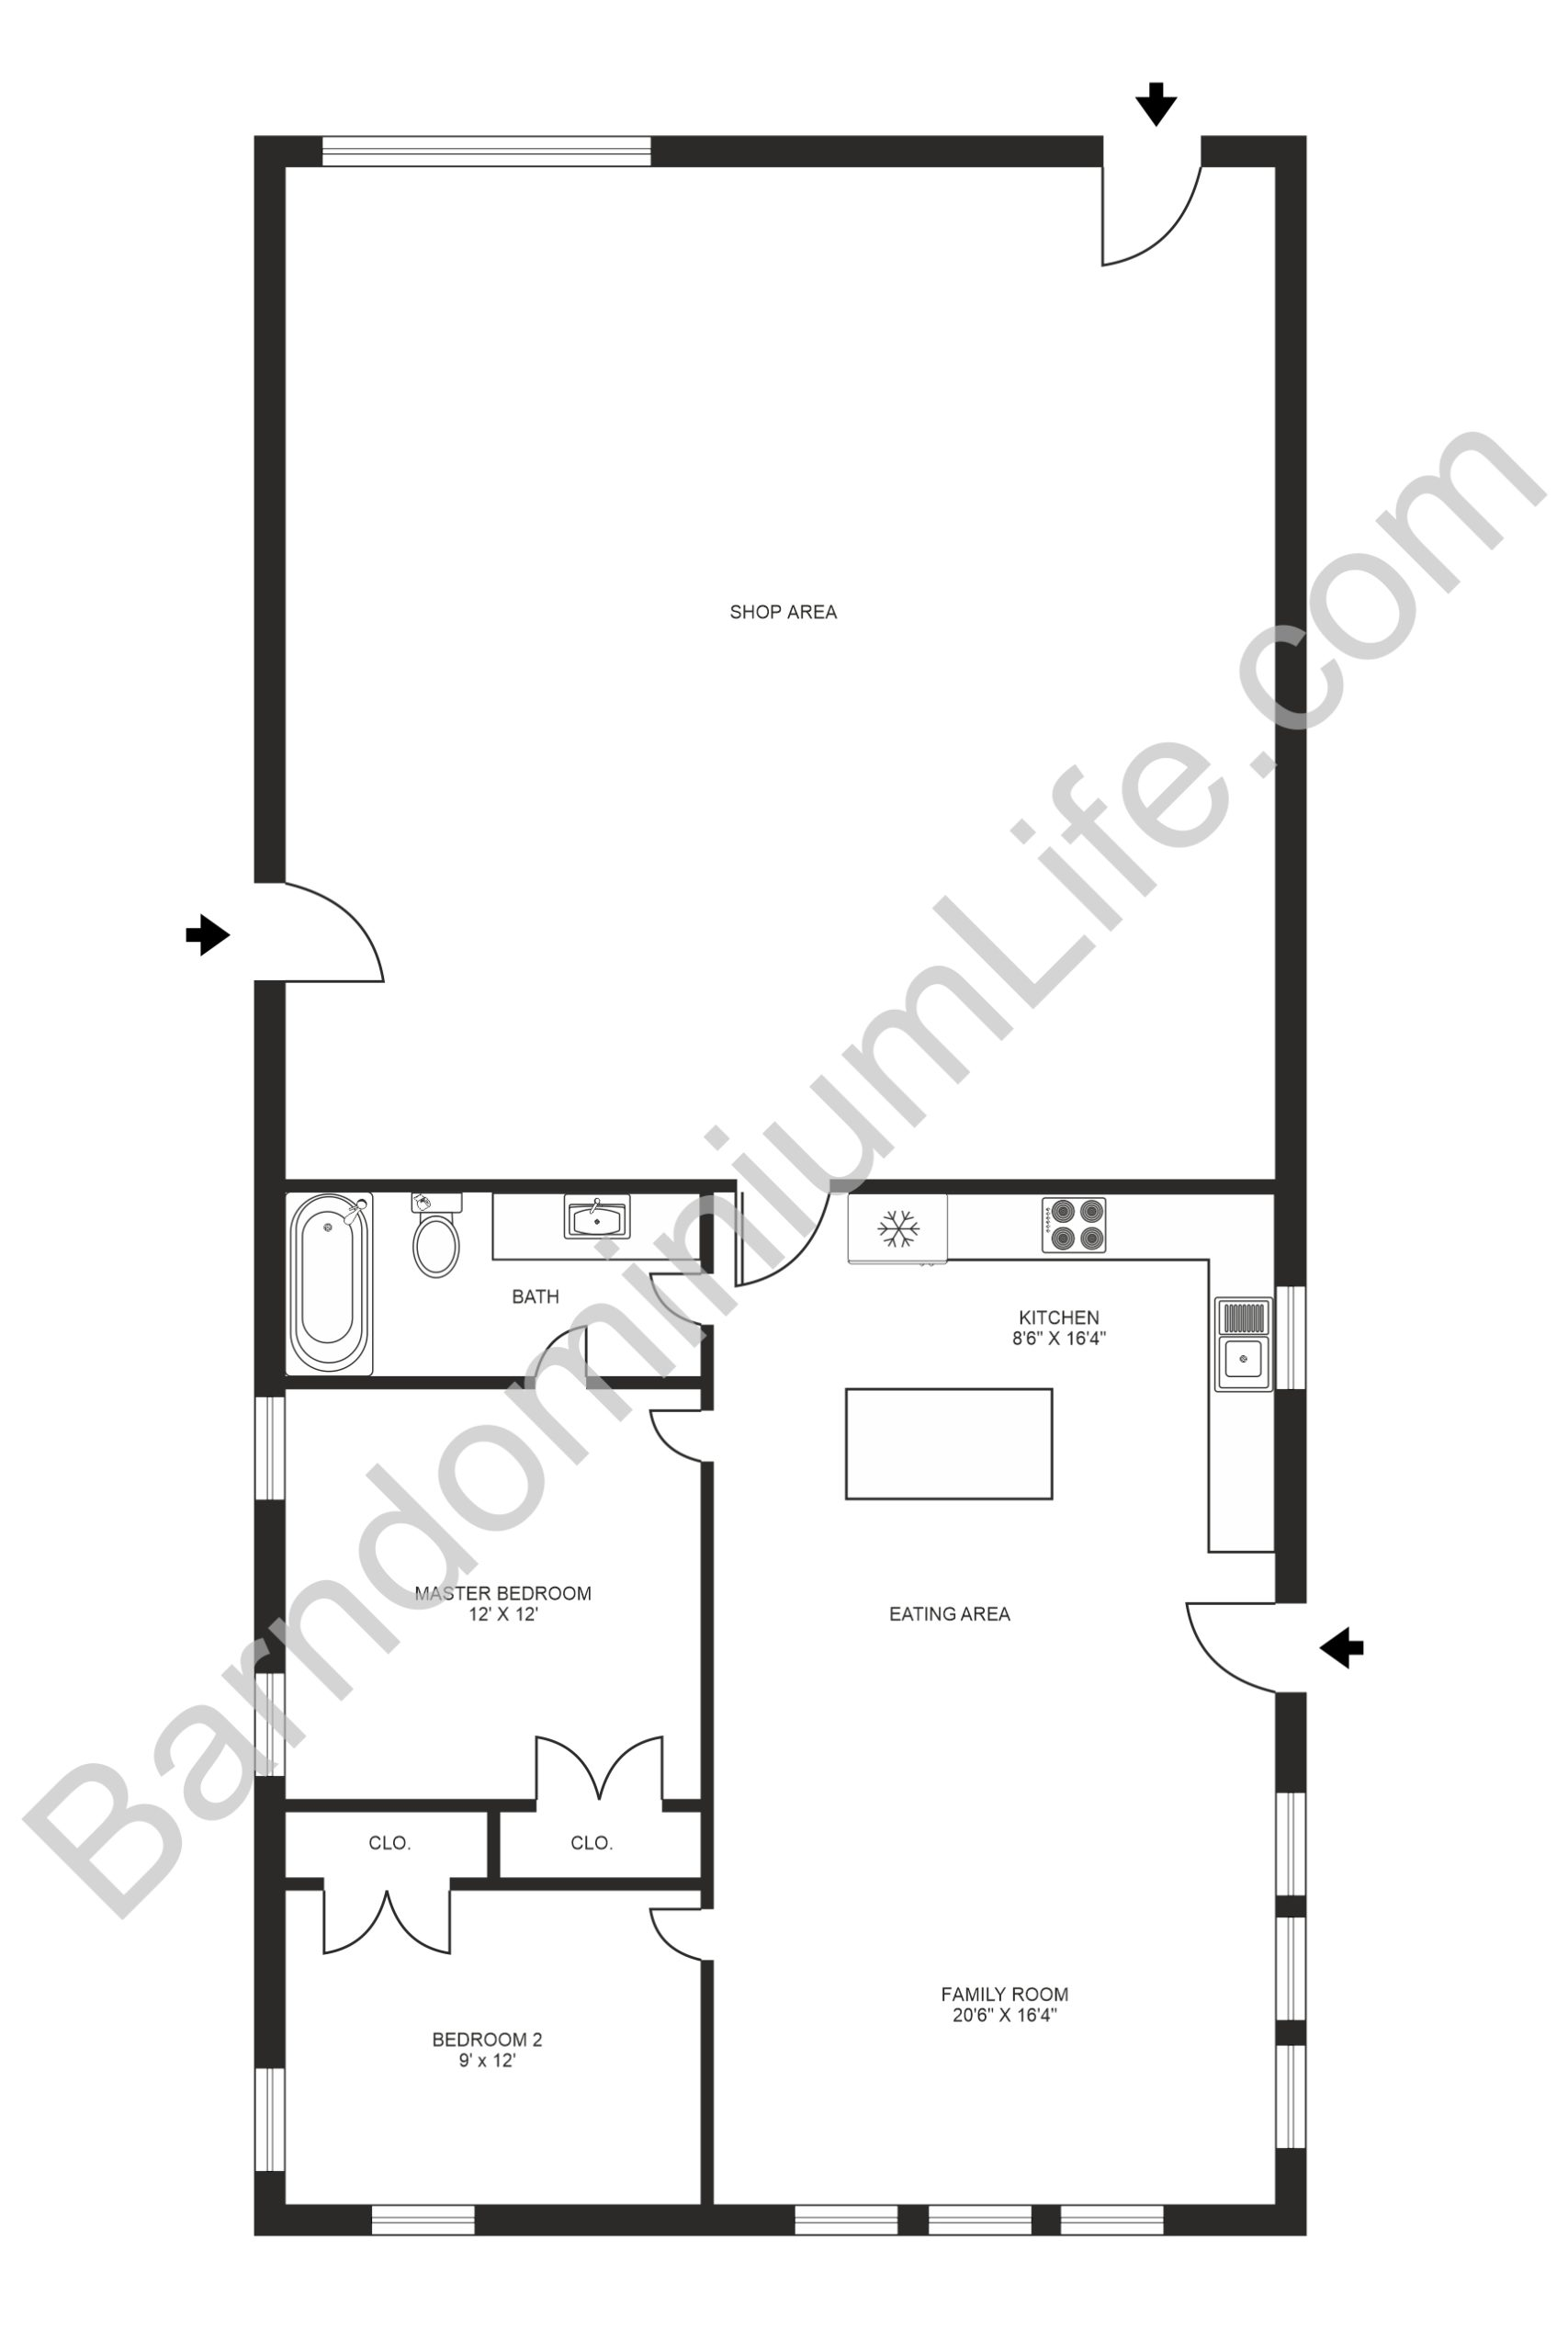 The 5 Best Barndominium Shop Plans With Living Quarters,What Do Different Discharge Colors Mean